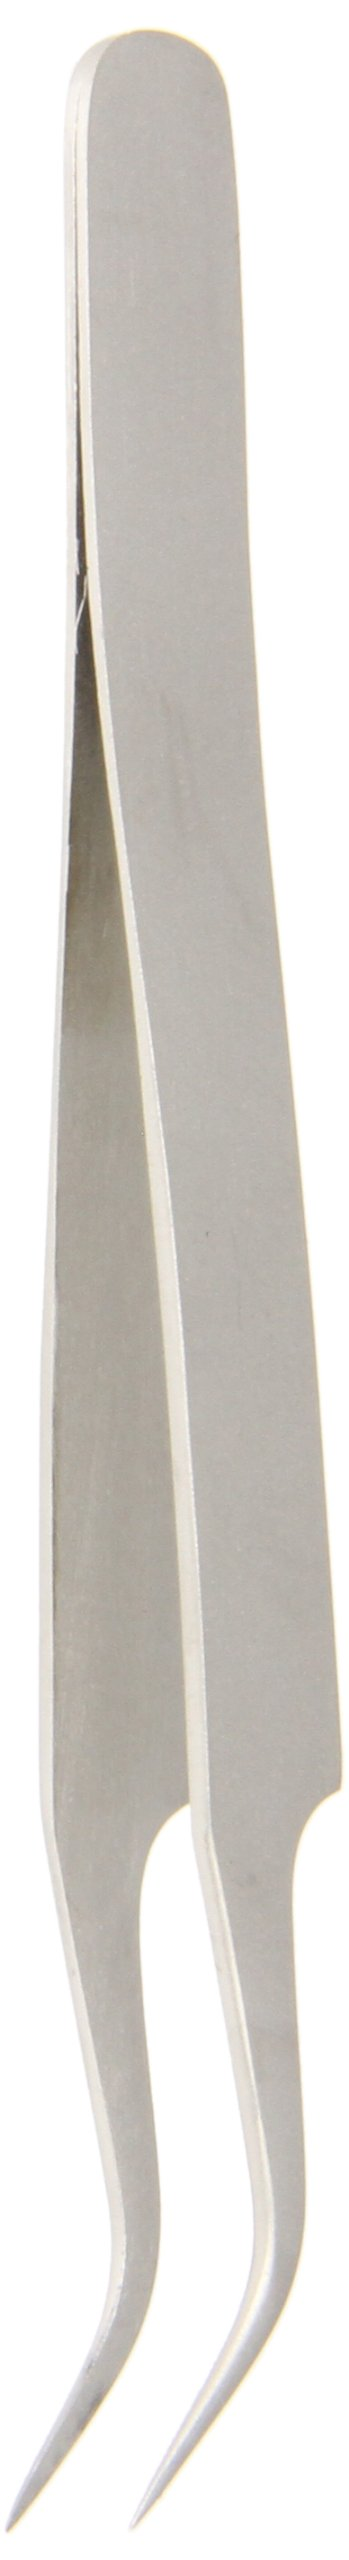 Hakko CHP 7-SA Stainless Steel Non-Magnetic Precision Tweezers with Very-Fine Point Curved Tips, 4-1/2 Length